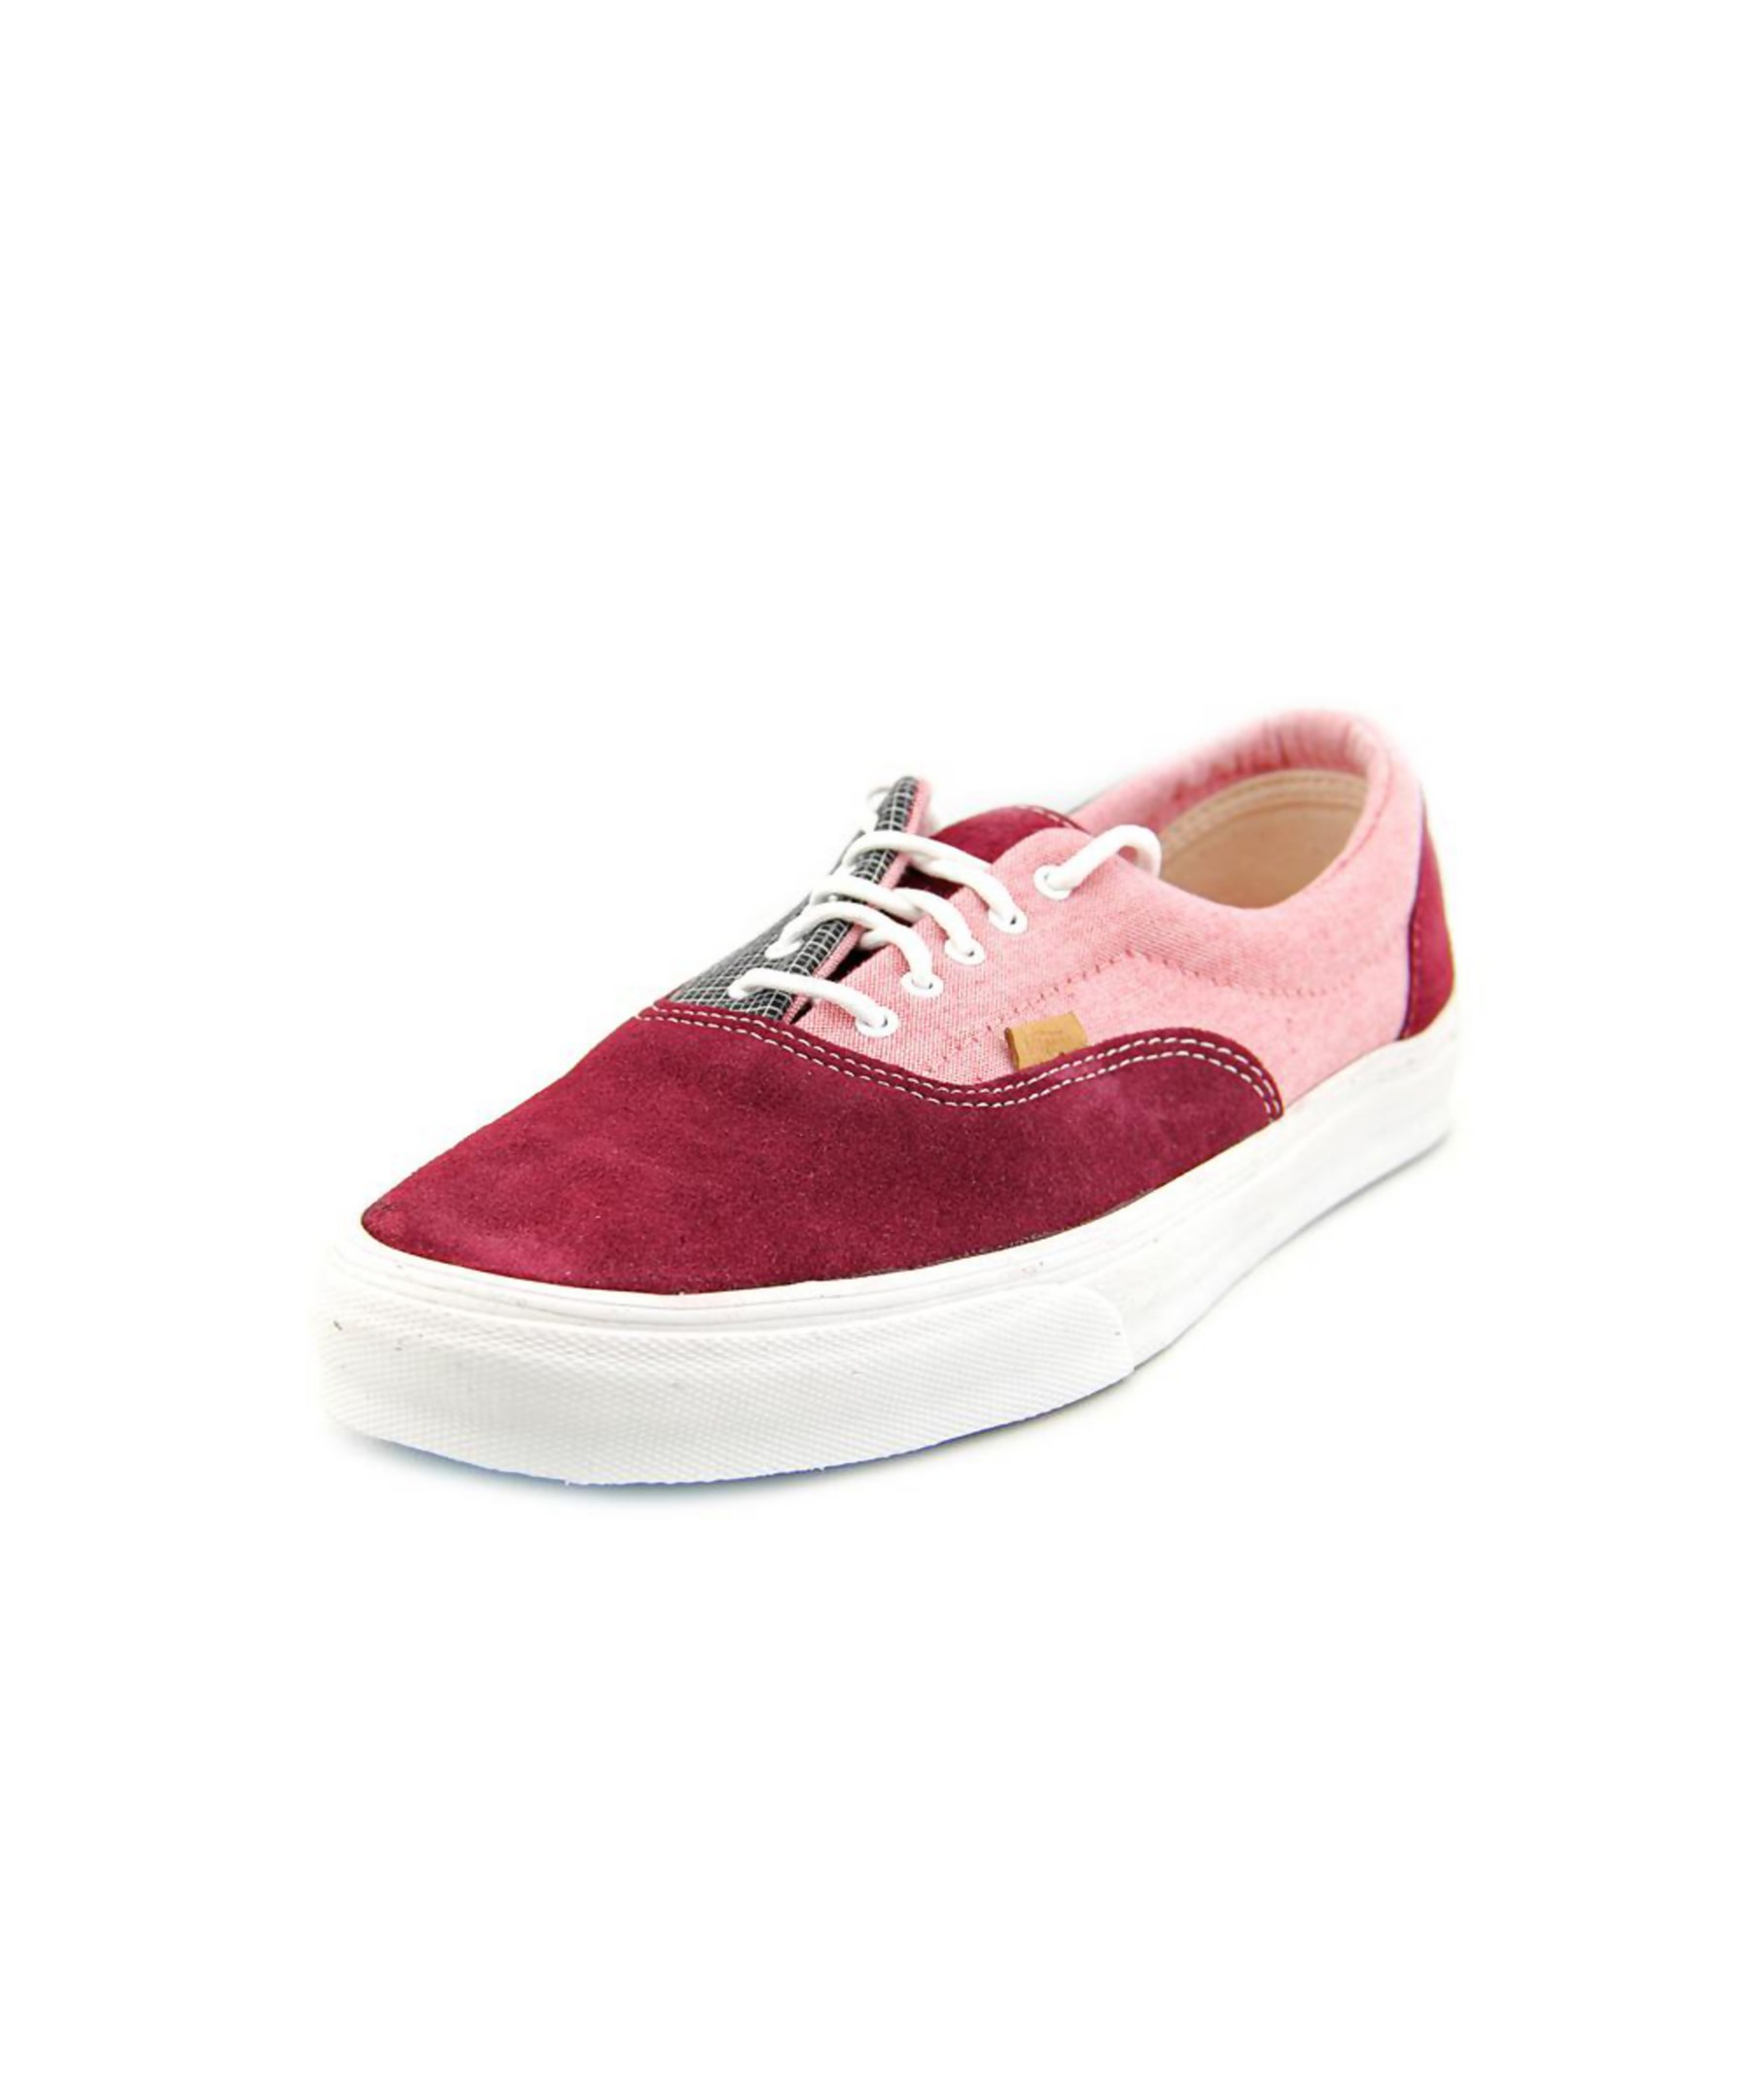 Vans Era Ca Men Round Toe Suede Burgundy Sneakers in Multicolor for Men (red) | Lyst